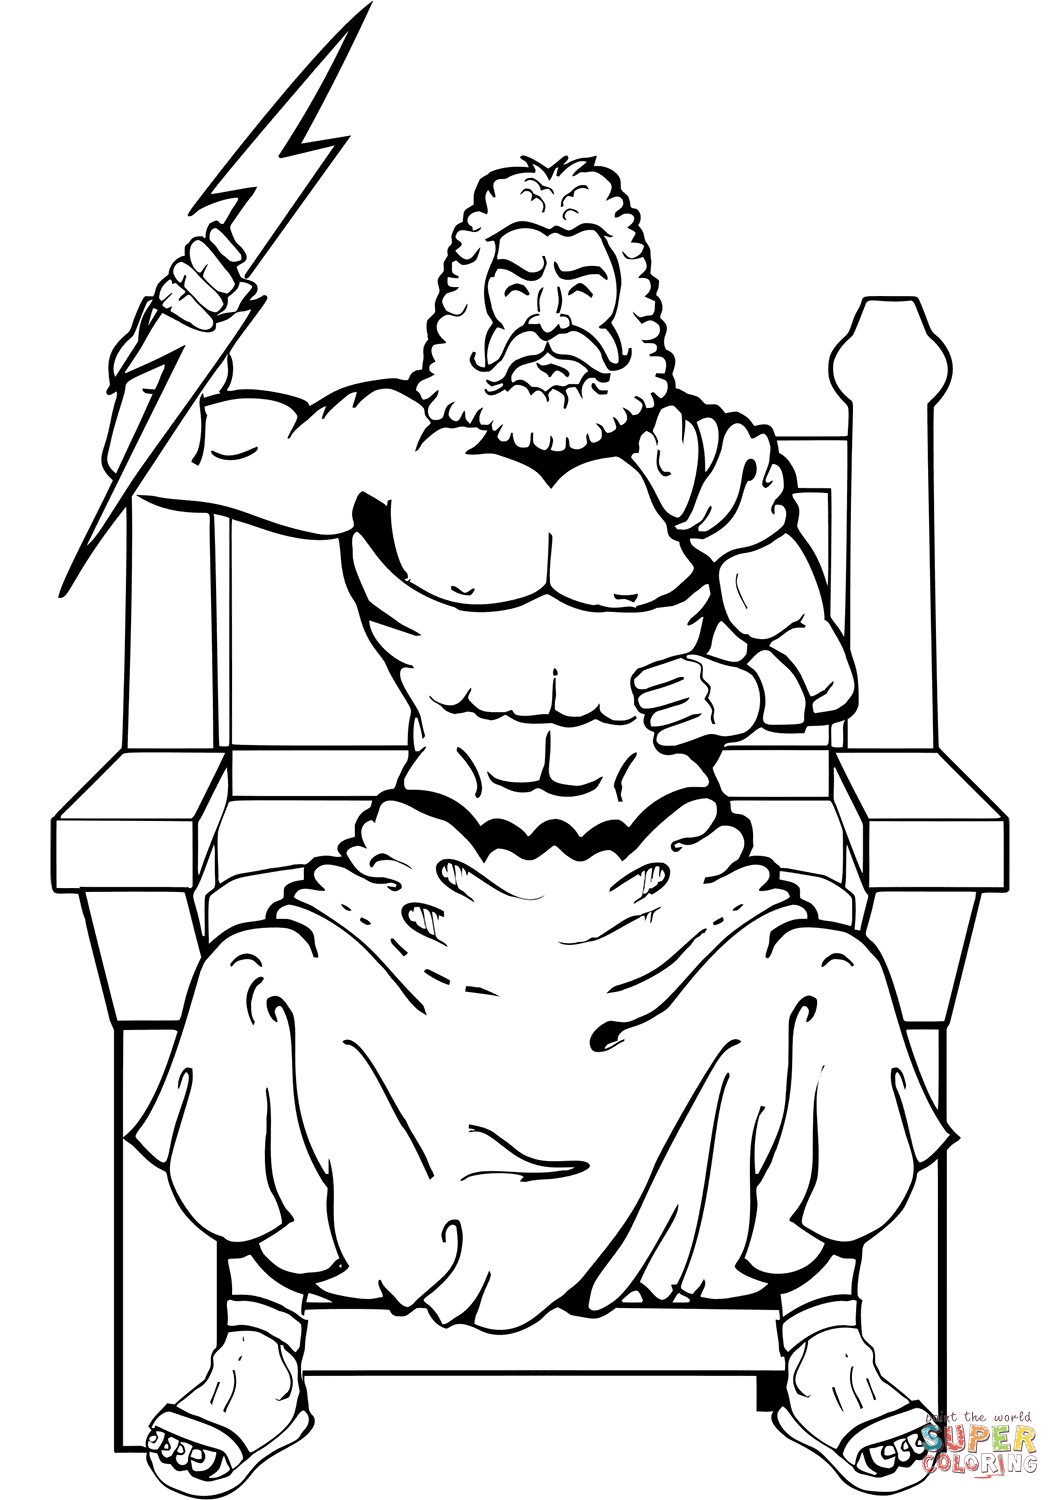 Zeus With Thunderbolt Coloring Page